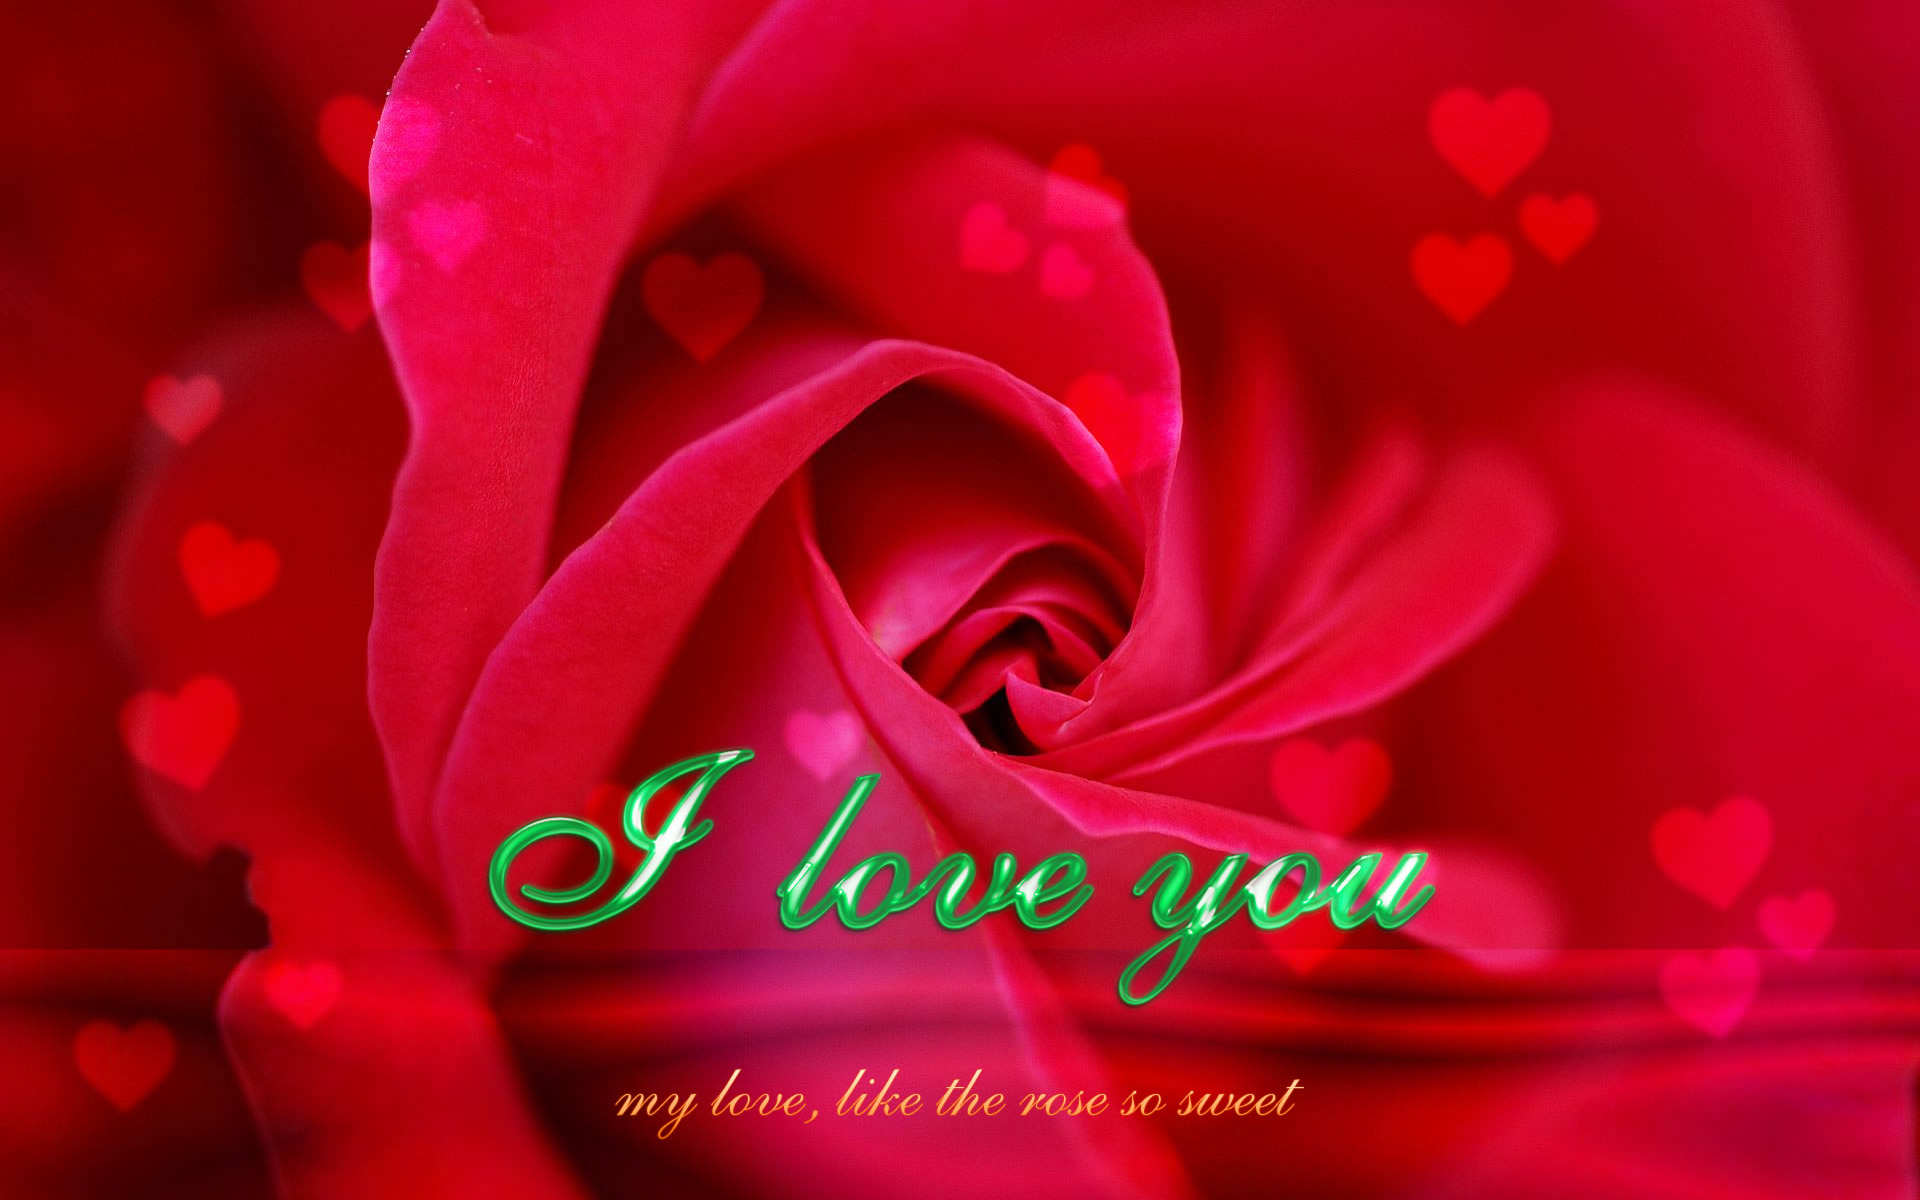 Kiss Day Hd Wallpaper With Quotes My Love Like The Rose So Sweet Love You Wallpapers13 Com